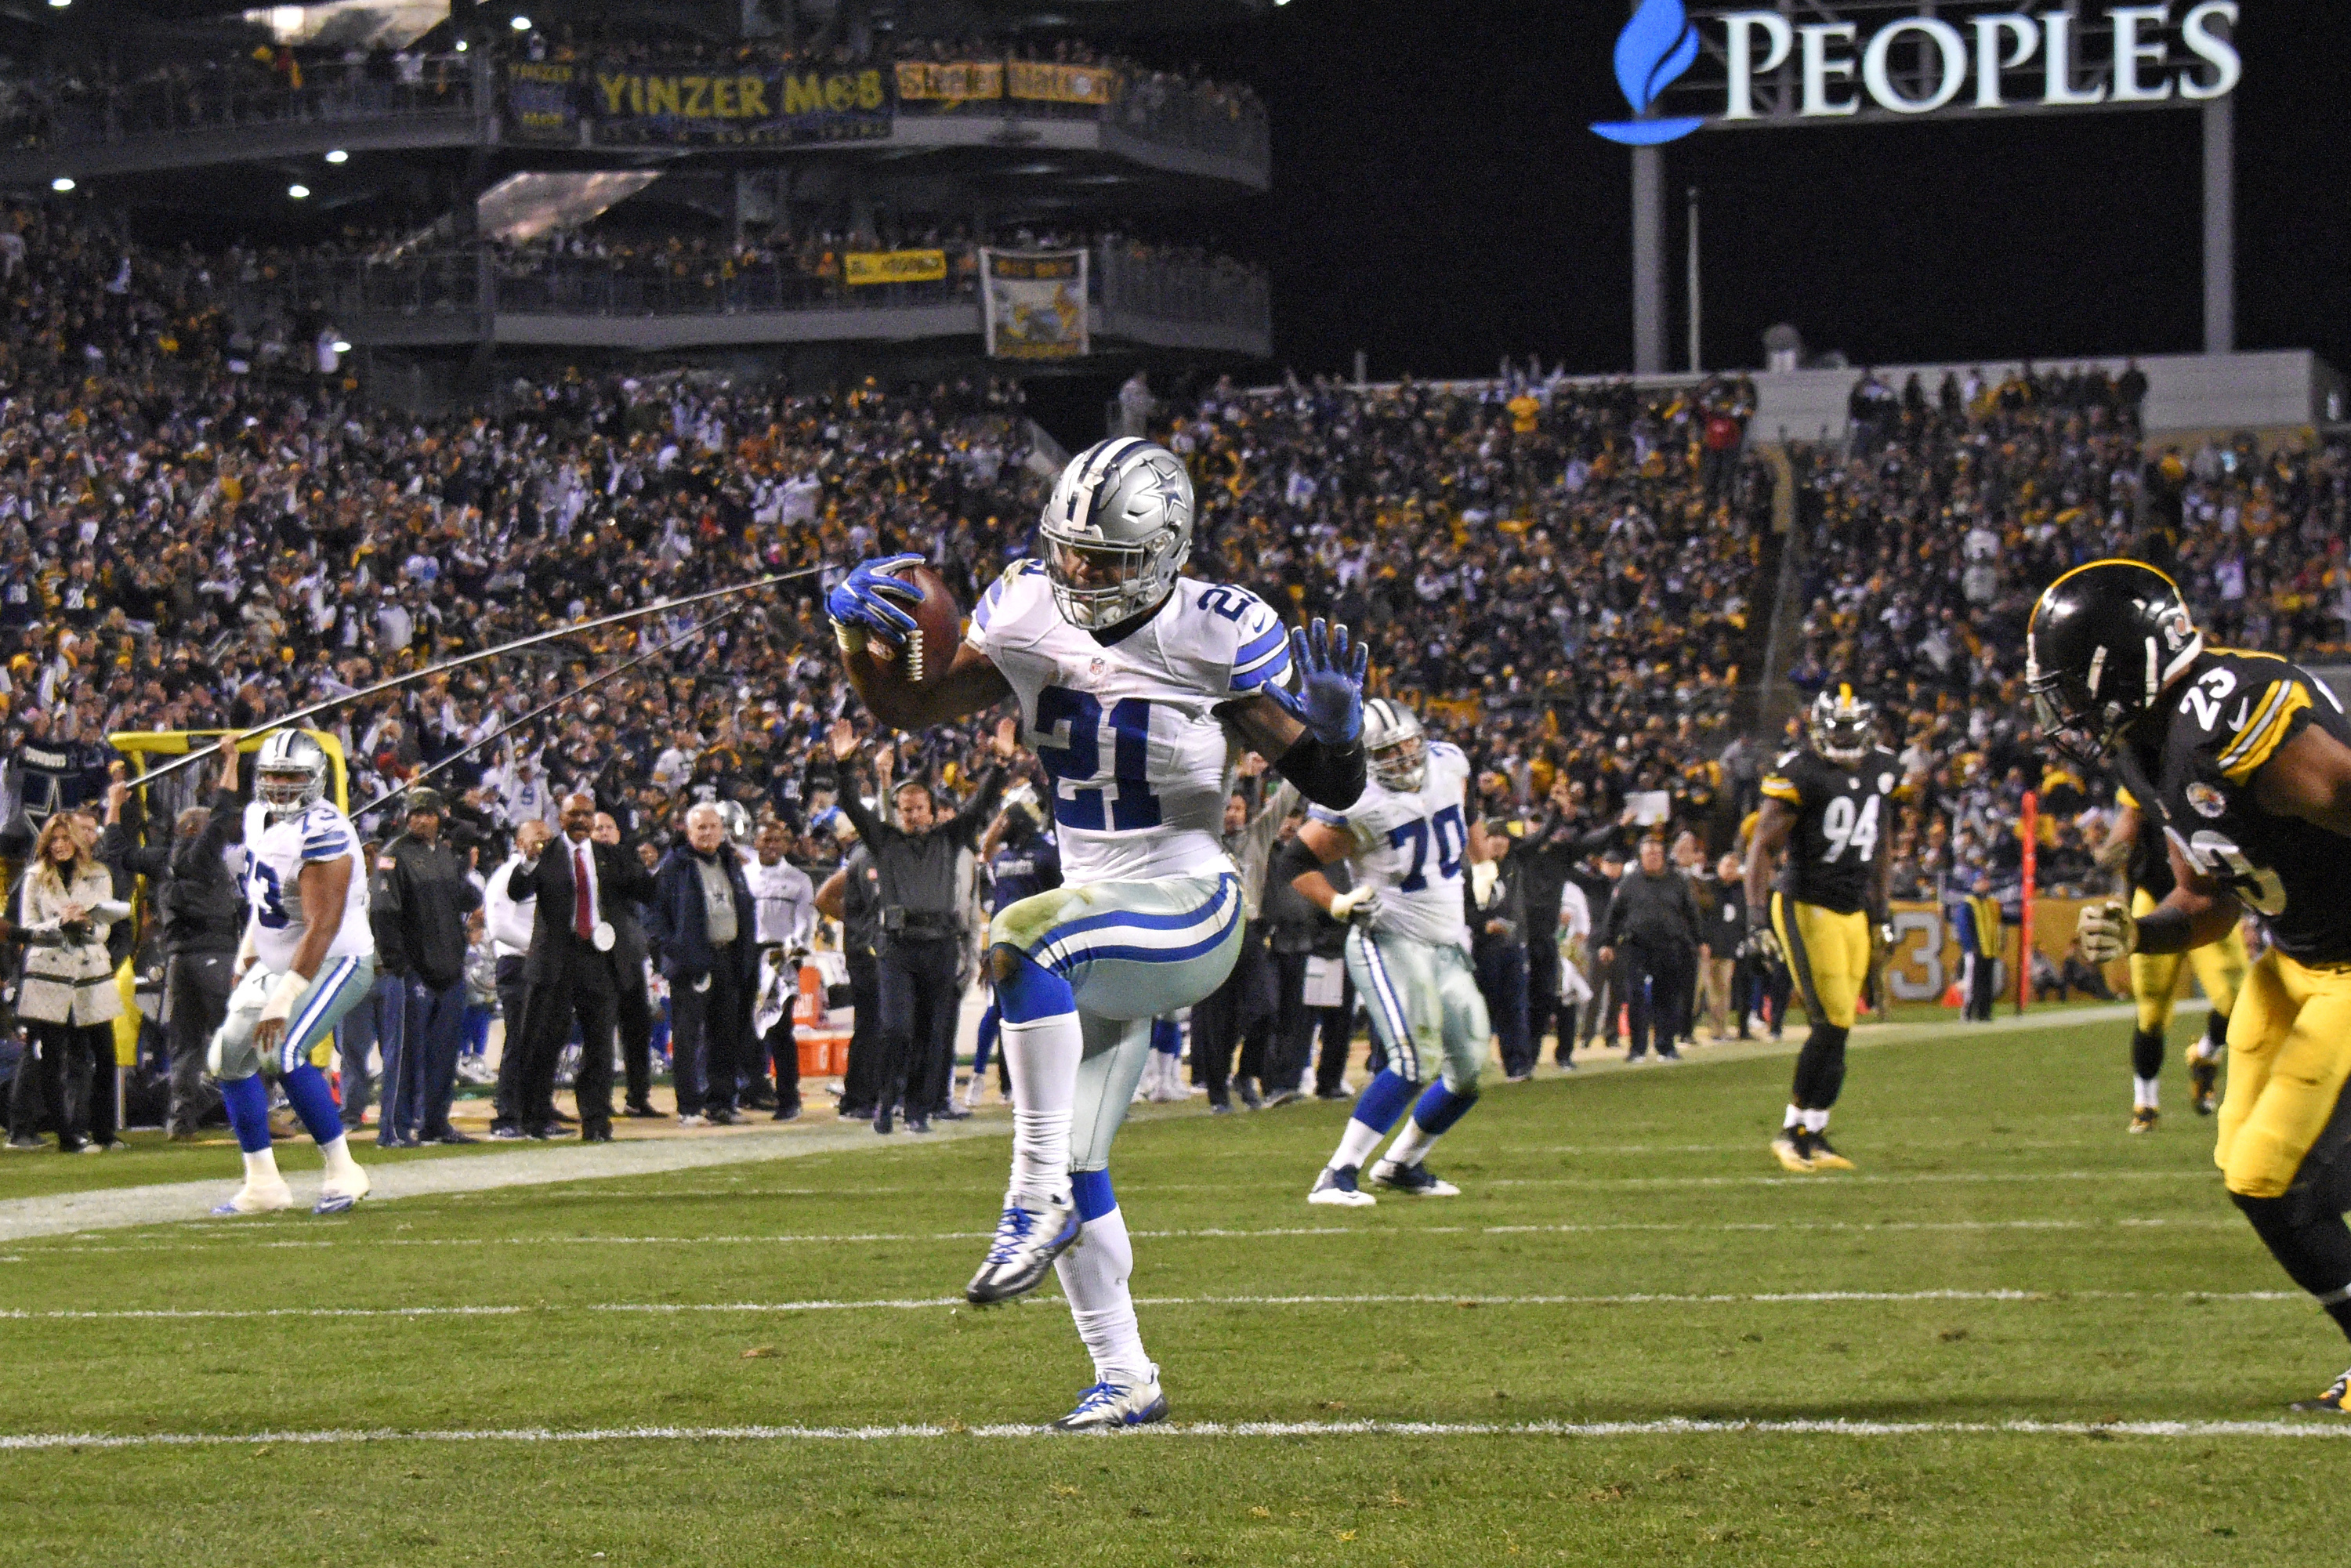 Dallas Cowboys running back Ezekiel Elliott (21) dances into the end zone ahead of Pittsburgh Steelers free safety Mike Mitchell (23) for a game-winning touchdown during the second half of an NFL football game in Pittsburgh, Sunday, Nov. 13, 2016. The Cow